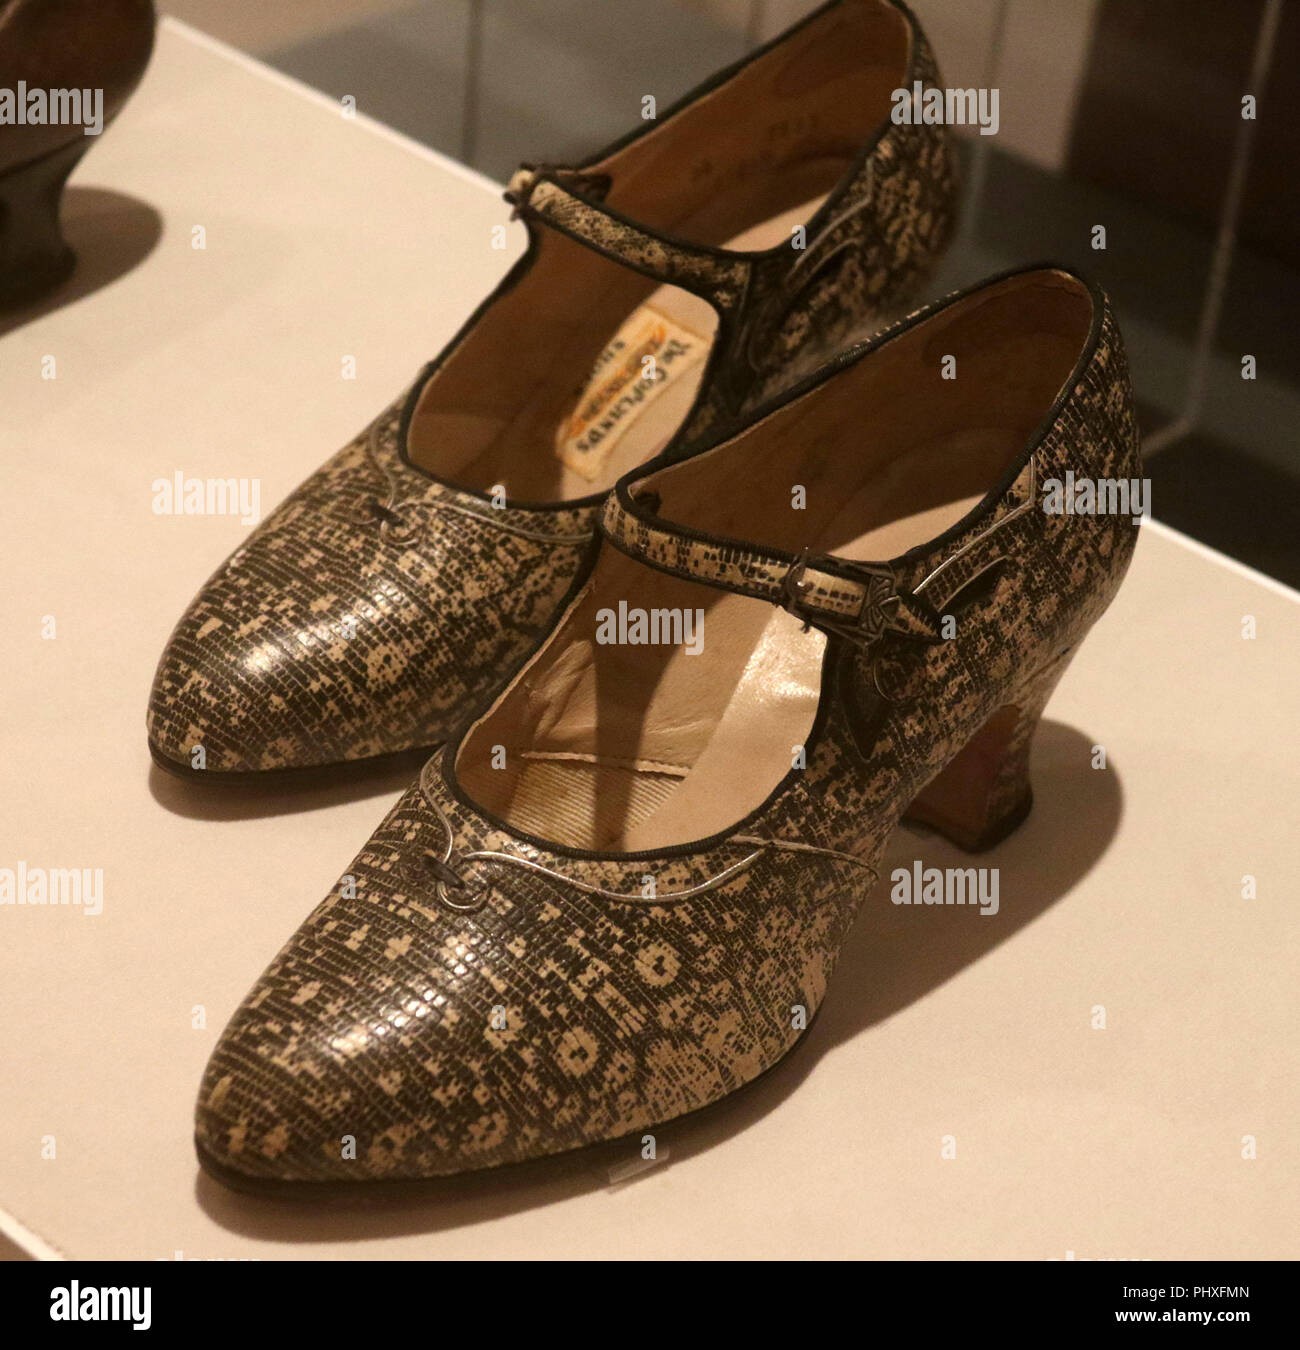 99f2387152f Mary Jane Shoes Stock Photos   Mary Jane Shoes Stock Images - Alamy